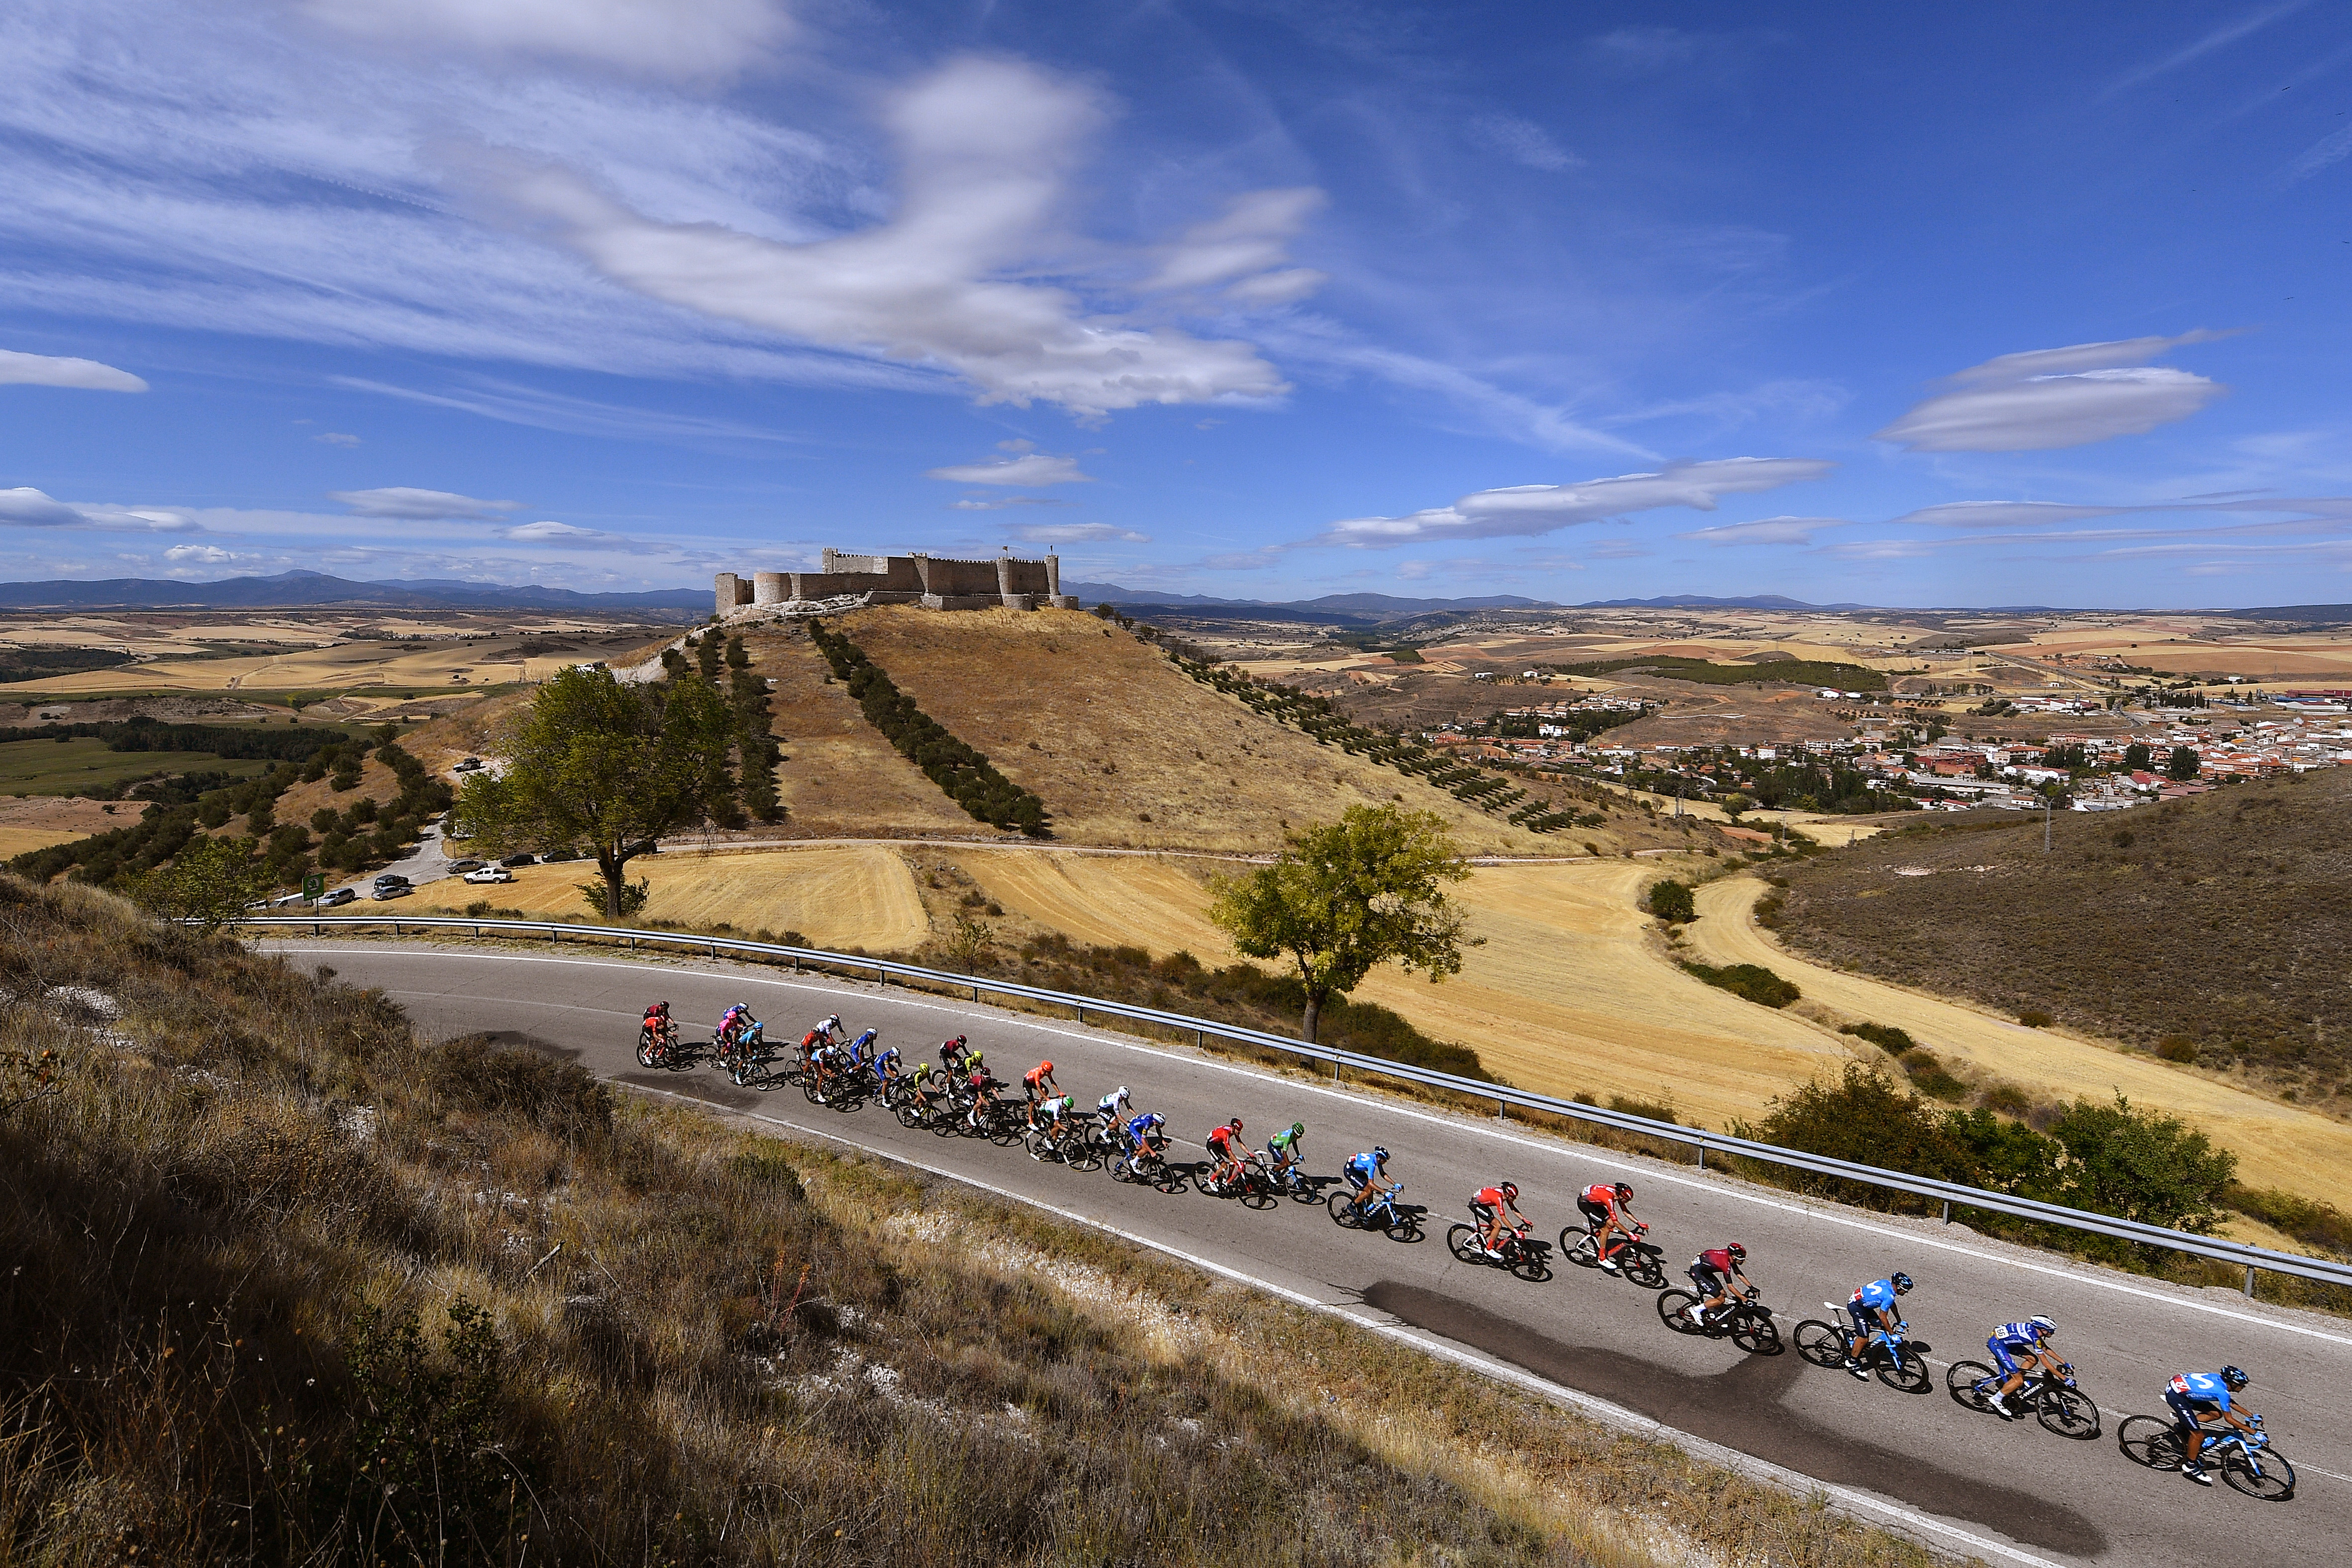 74th Tour of Spain 2019 - Stage 17